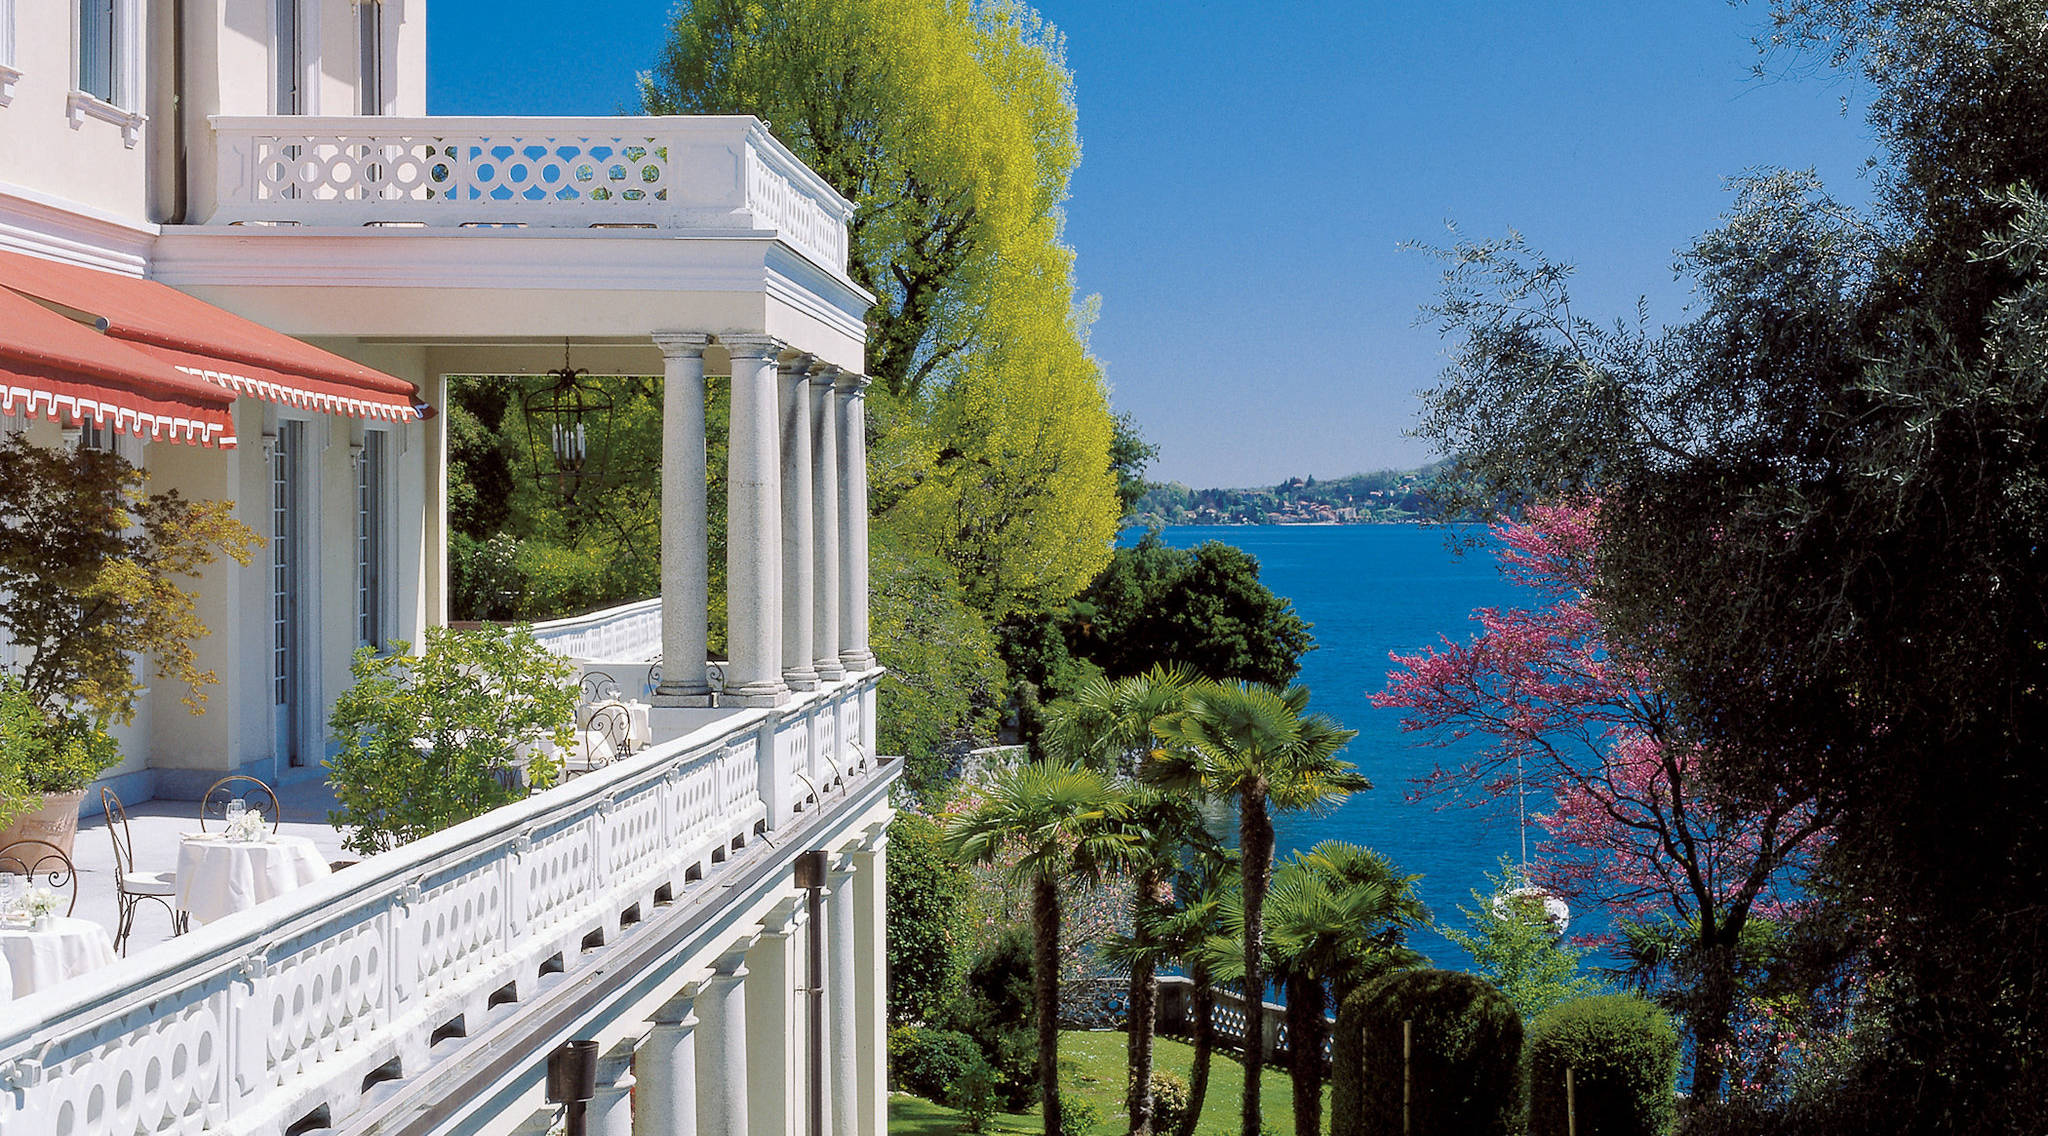 Enjoy spectacular lakeside views from the Grand Hotel Majestic in Italy. Photo )